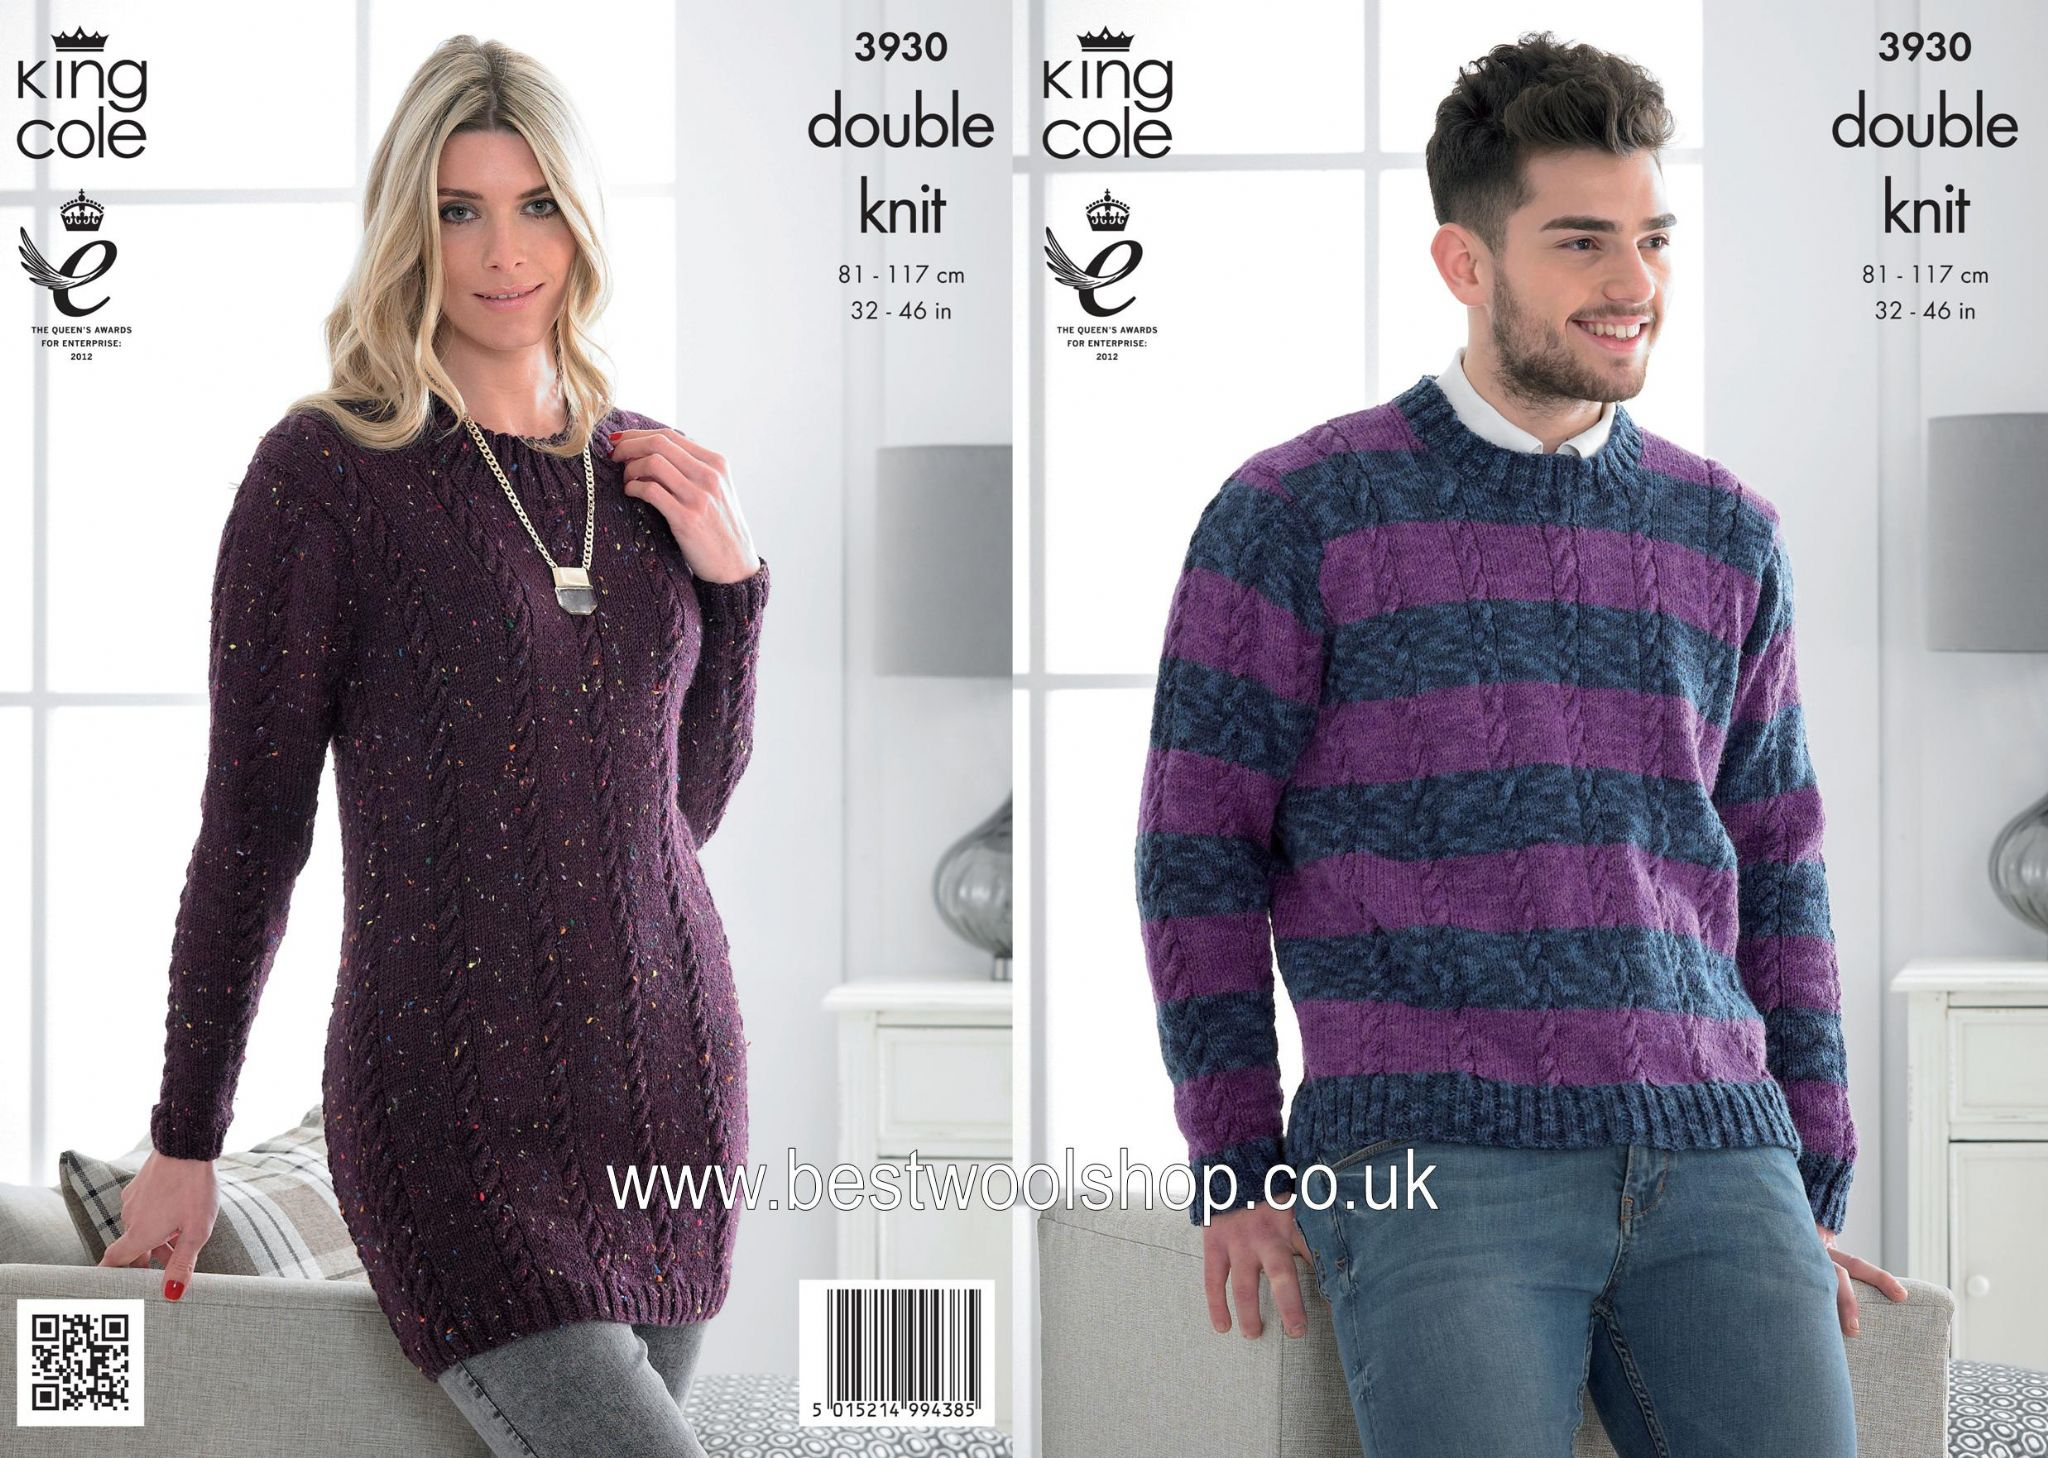 Knitting Pattern Dress 3930 King Cole Moods Dk Mens Sweater Ladies Sweater Dress Tunic Knitting Pattern To Fit Chest 32 To 46